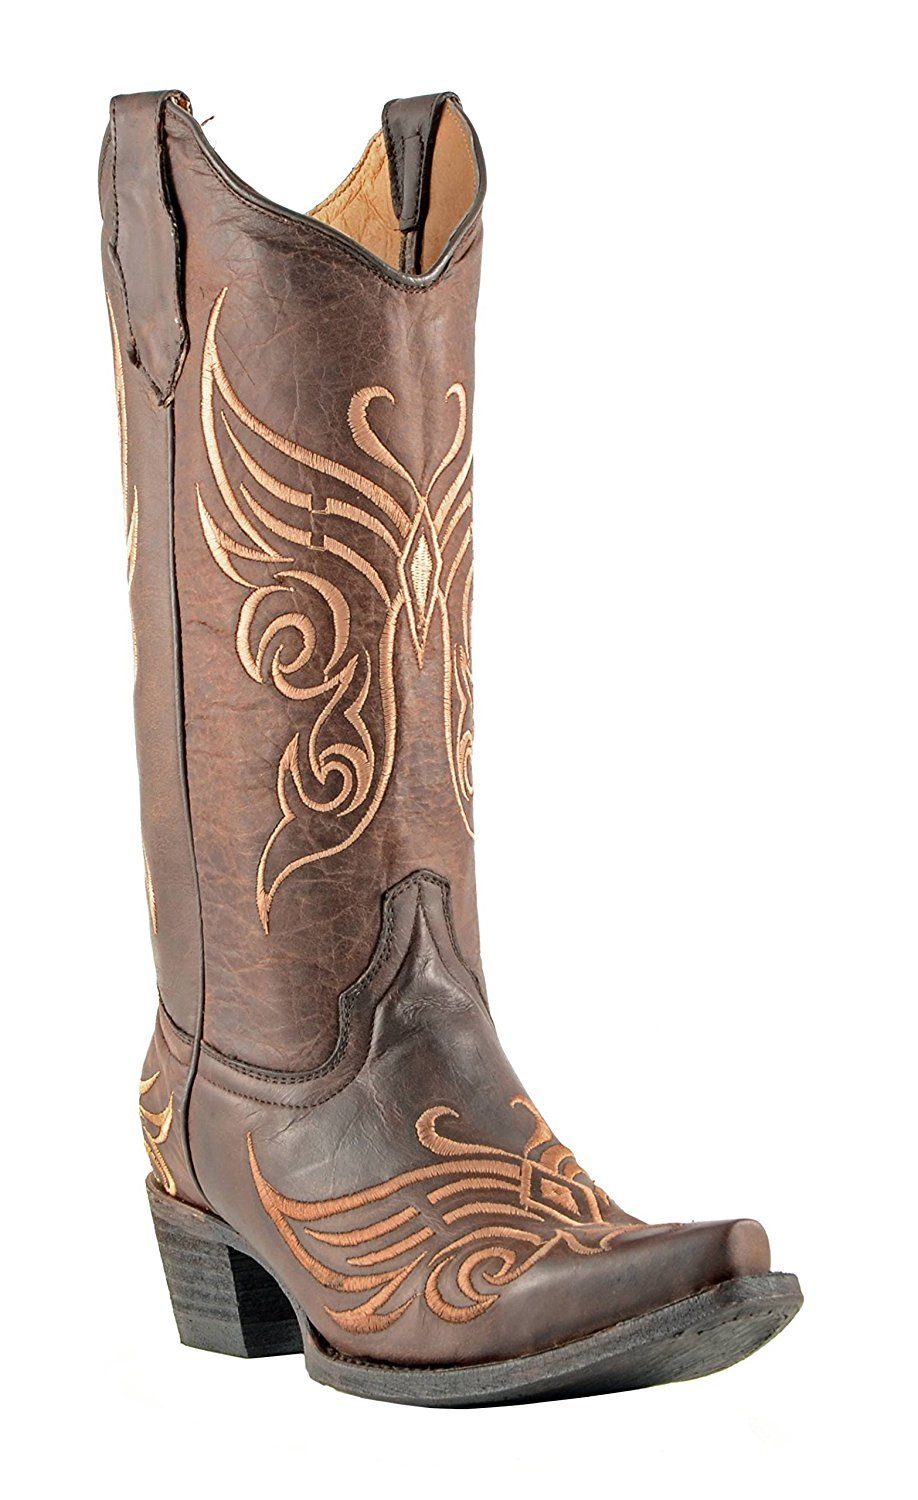 grey Aldo boots round tip size 9 vintage women/'s cowboy boot patchwork brown leather boot,Tan red-yellow-beige